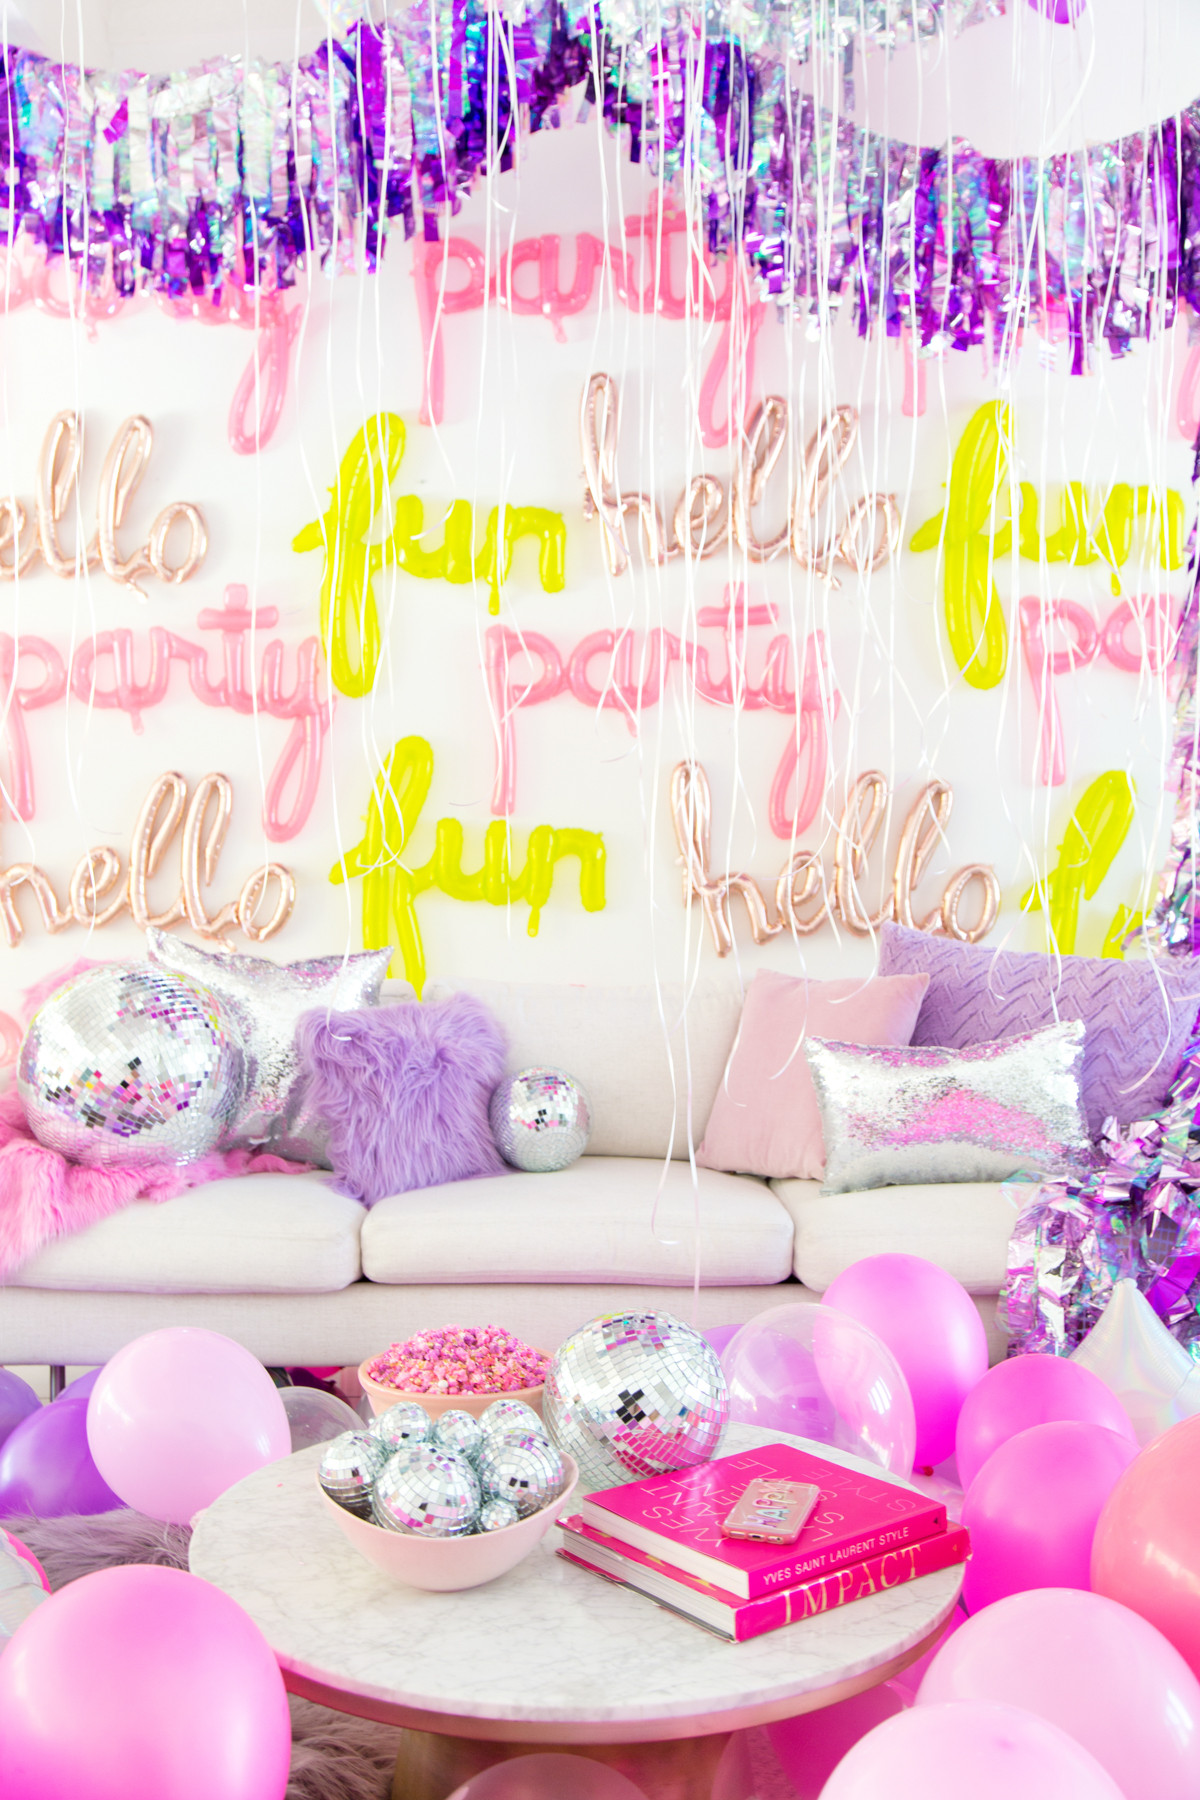 Best ideas about Sleepover Birthday Party . Save or Pin No Boys Allowed A Holographic Neon Slumber Party Now.